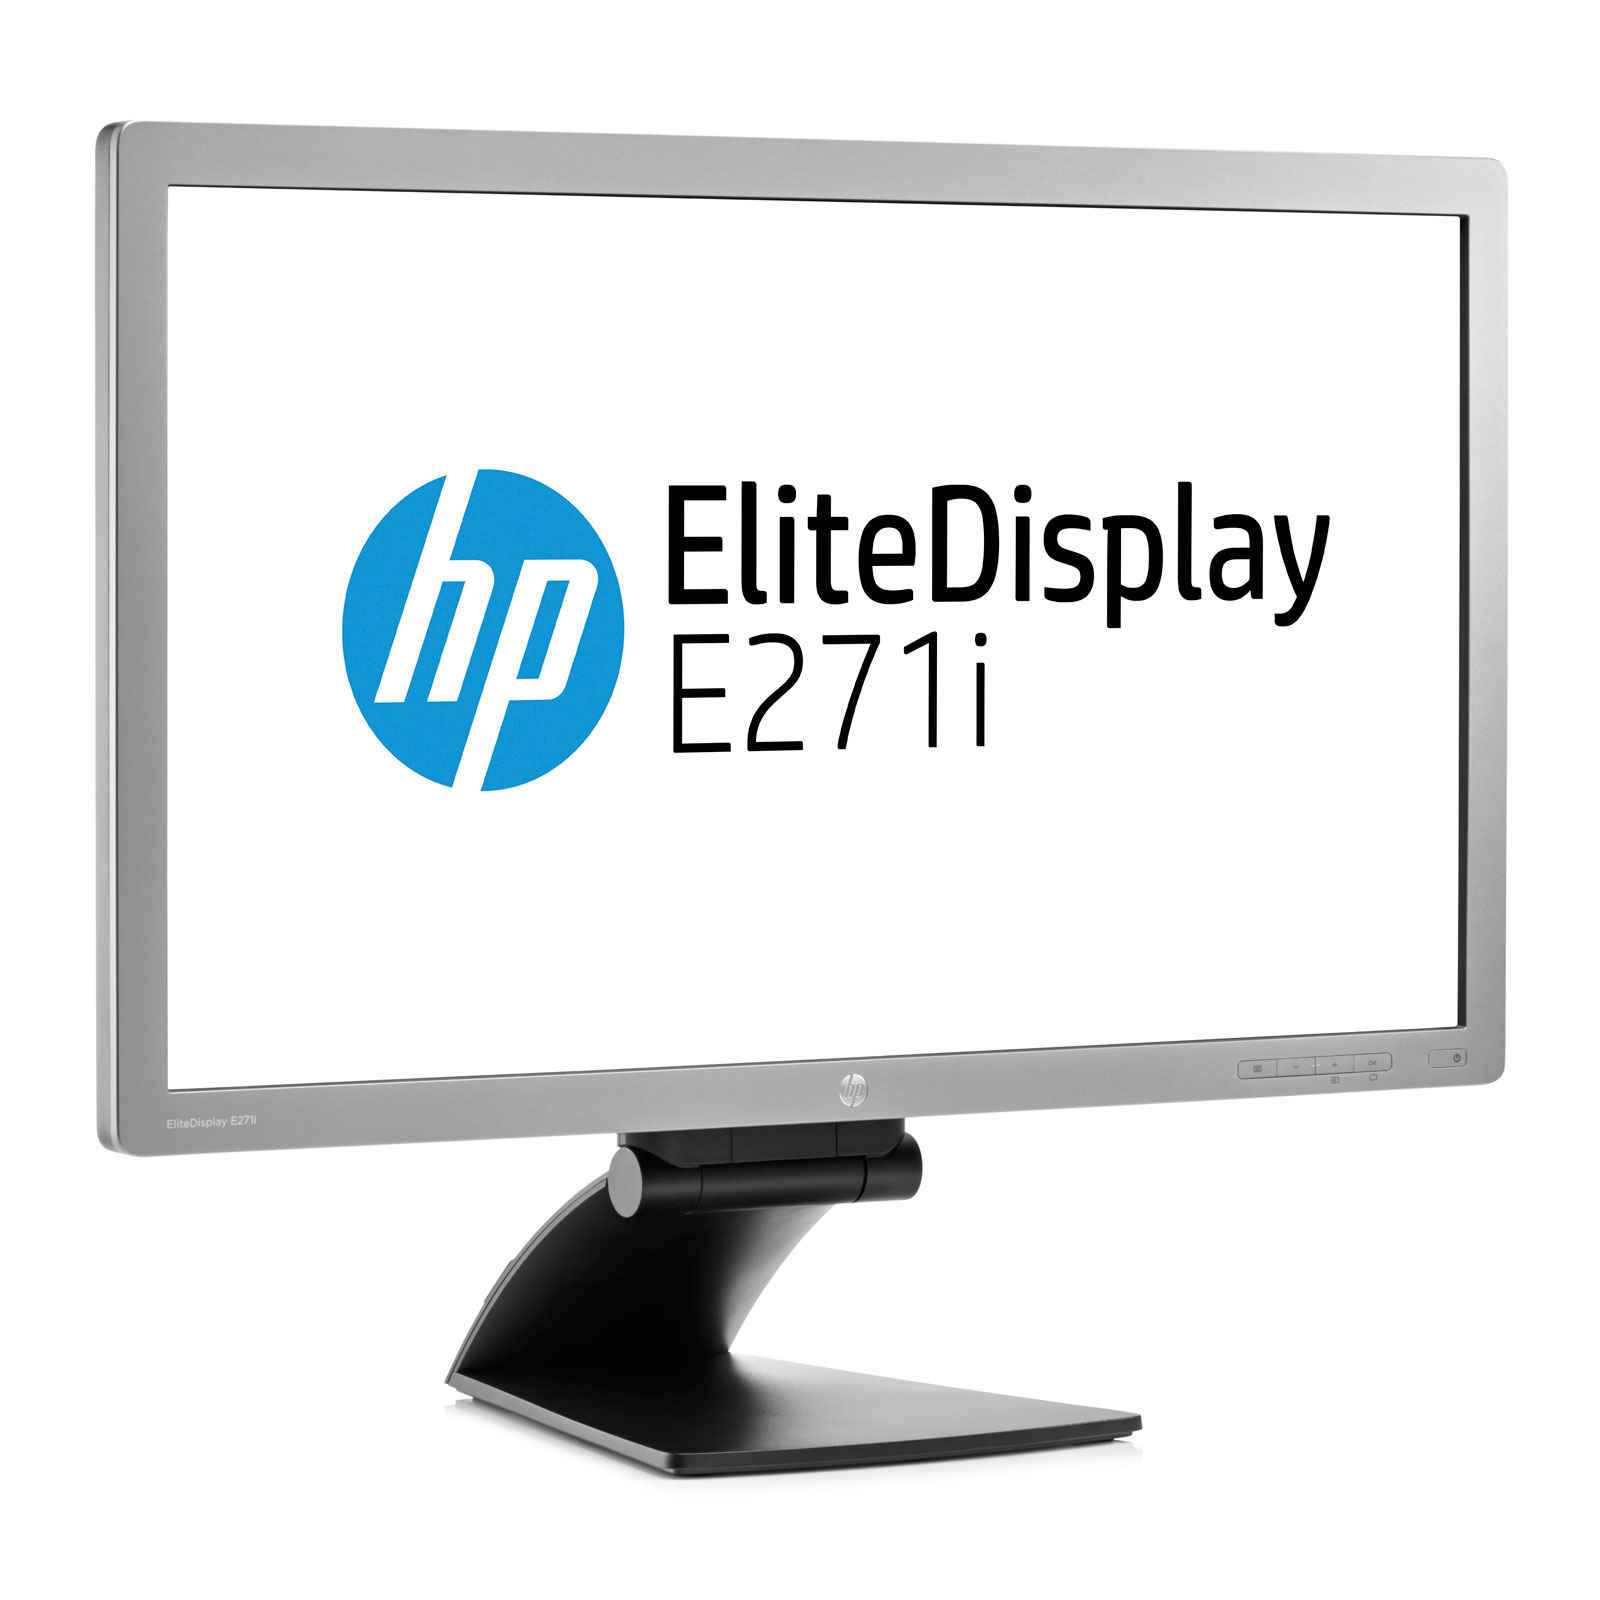 "Ecran PC HP 27"" LED - EliteDisplay E271i (D7Z72AT)  1920 x 1080 pixels - 7 ms - Format large 16/9 - Dalle IPS - DisplayPort - Hub USB - Noir"